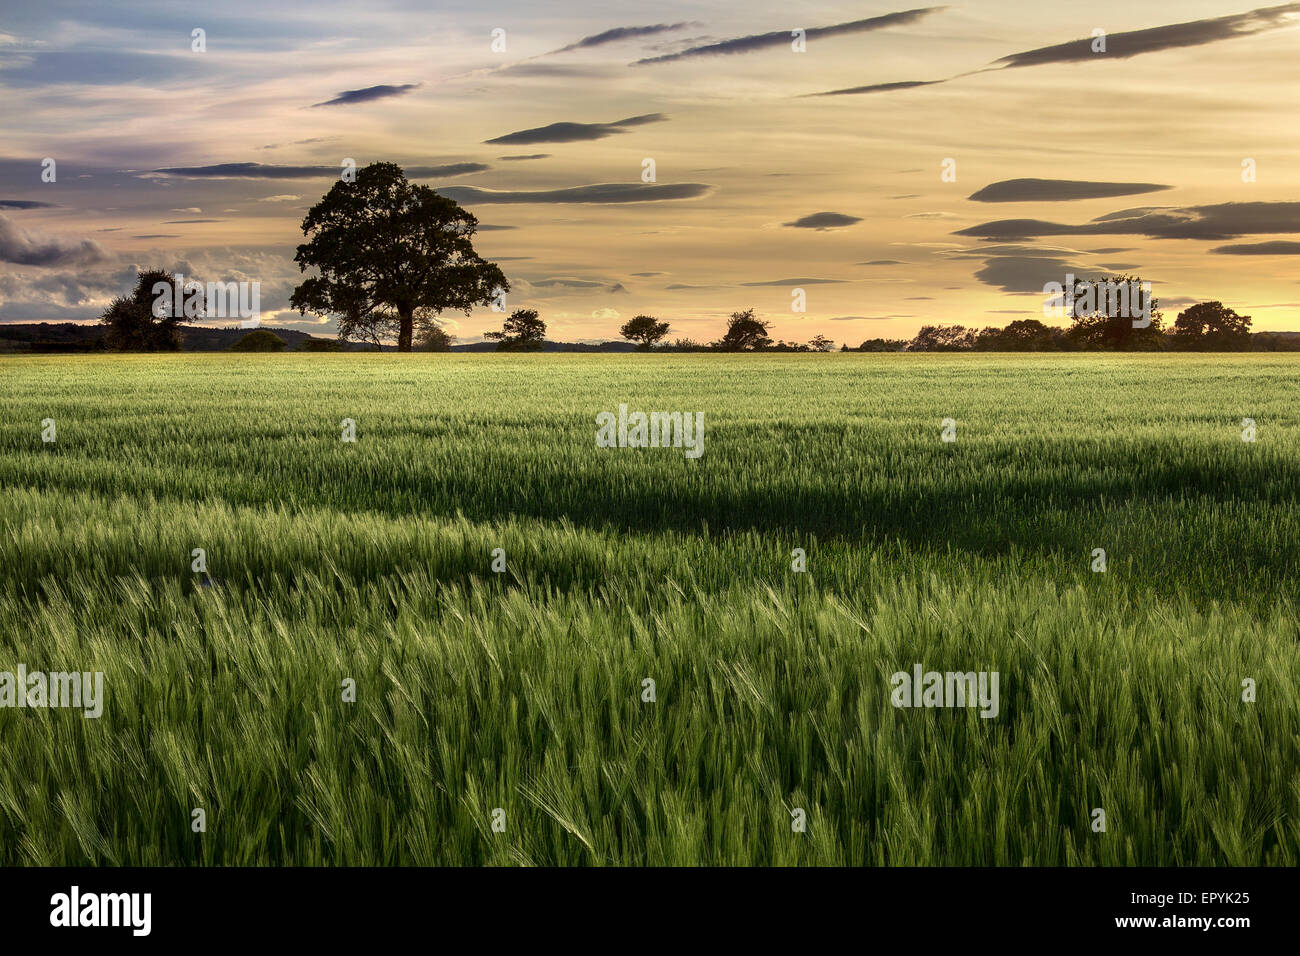 Evening sun over a crop of wheat in a farmers field. North Yorkshire in the United Kingdom. - Stock Image